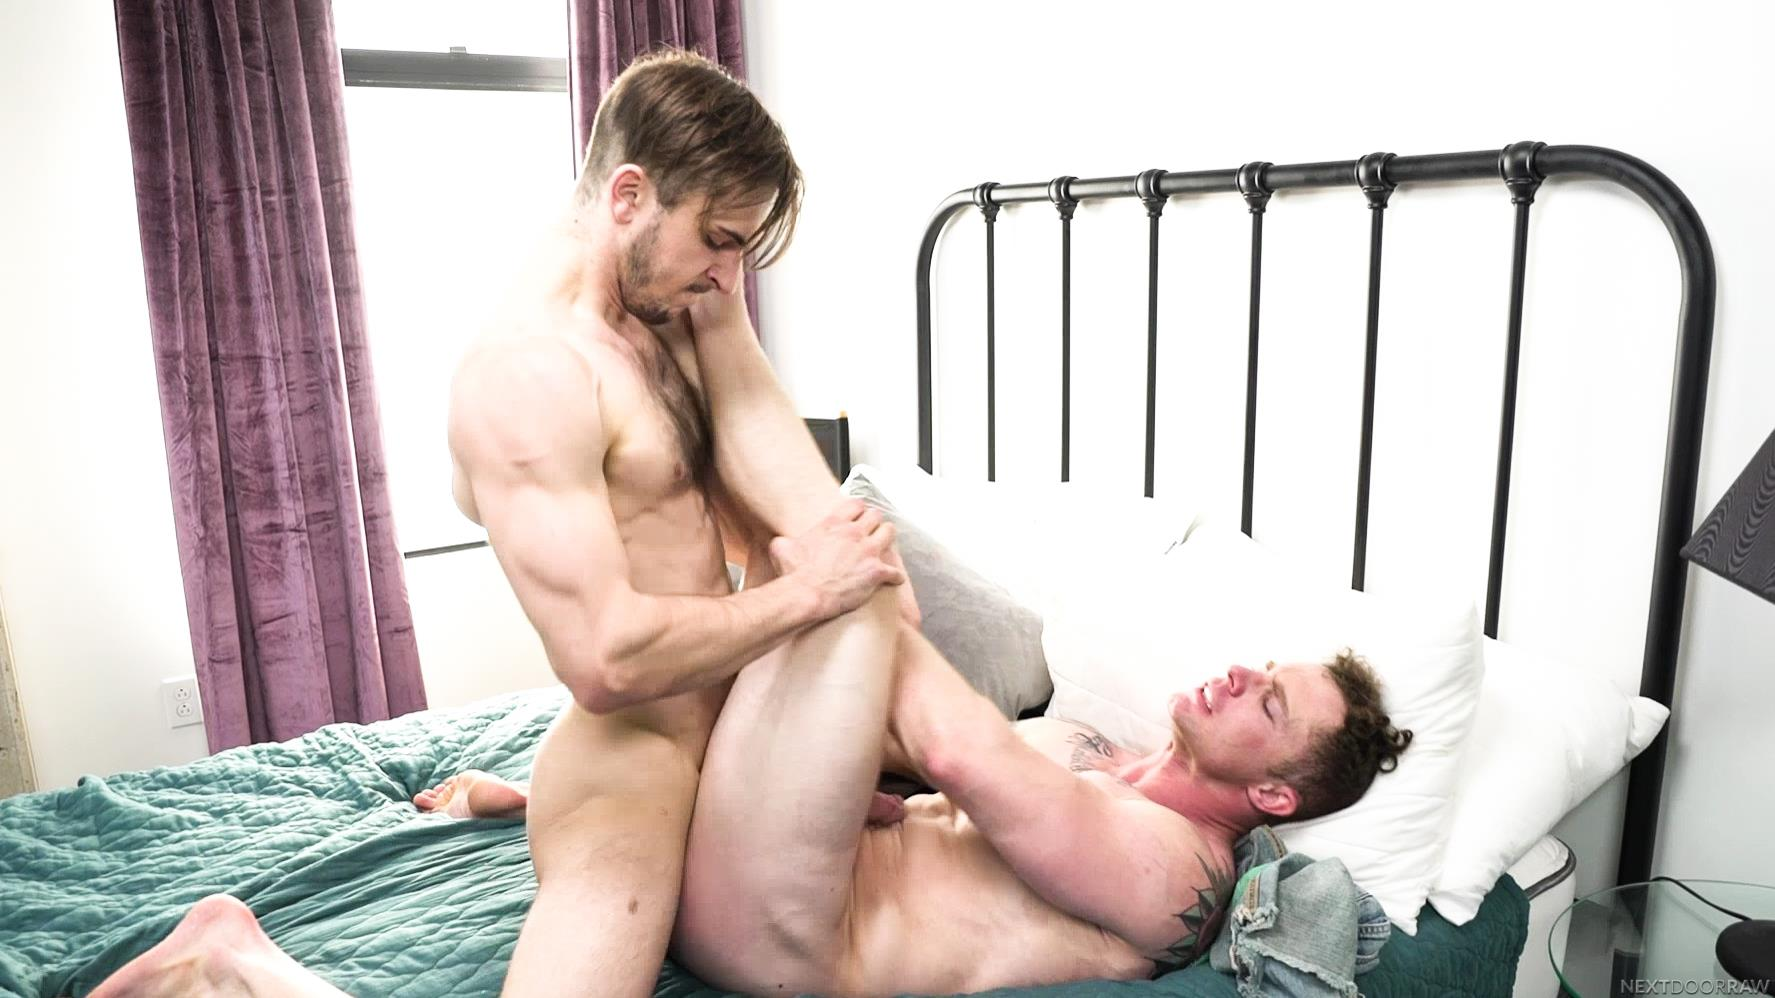 Next-Door-Raw-Markie-More-and-Donte-Thick-Bareback-Flip-Sex-Video-15 Markie More and Donte Thick Bareback Flip Fucking